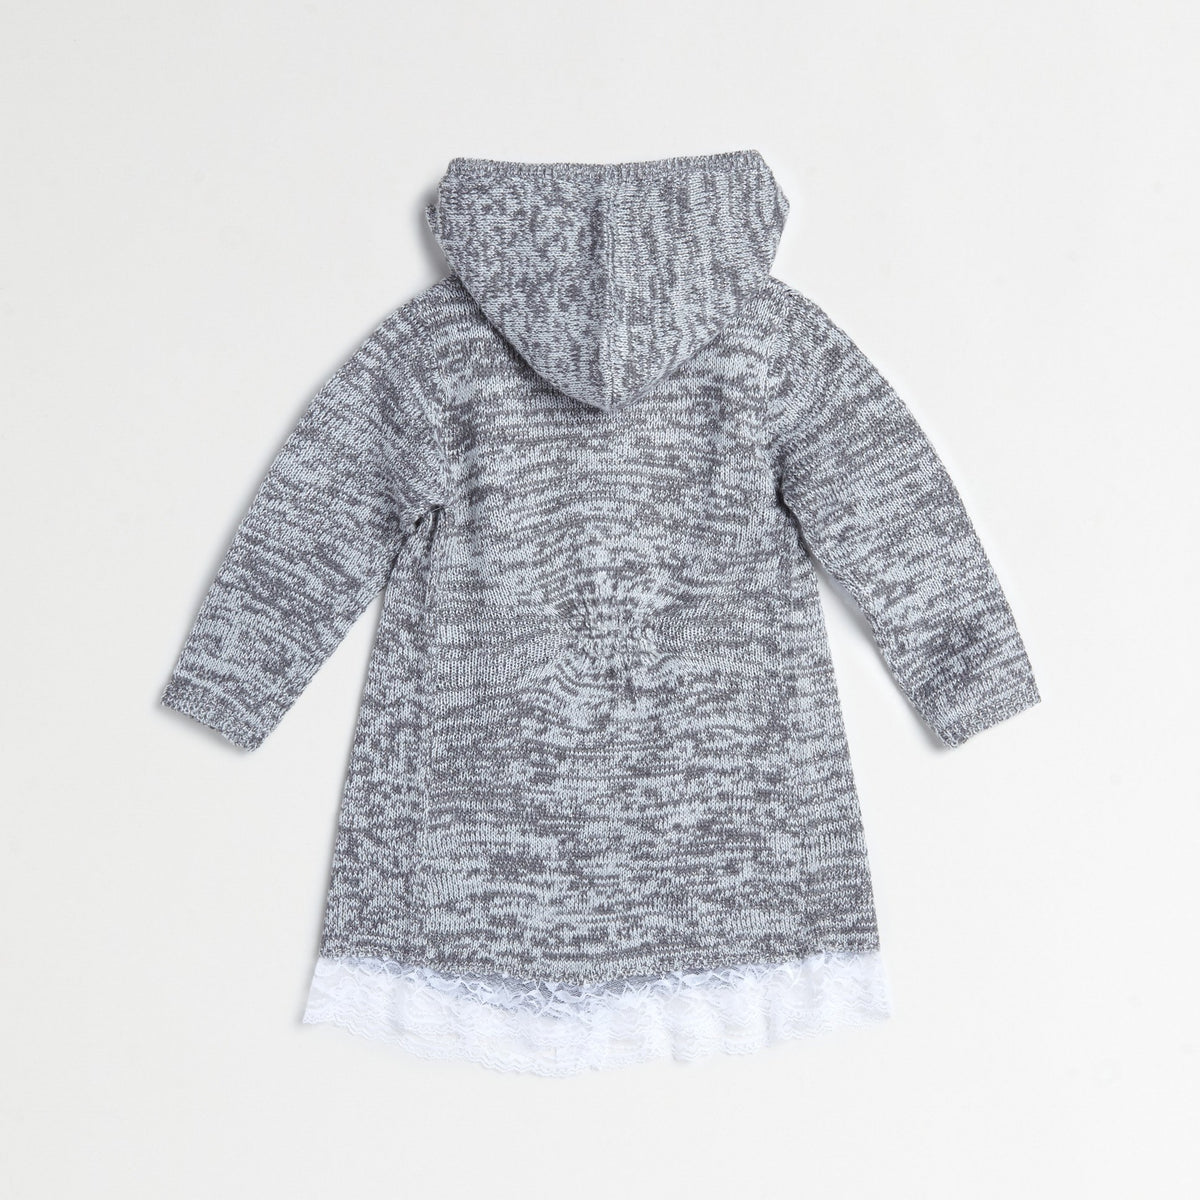 Gray Lace Flyaway Sweater Coat